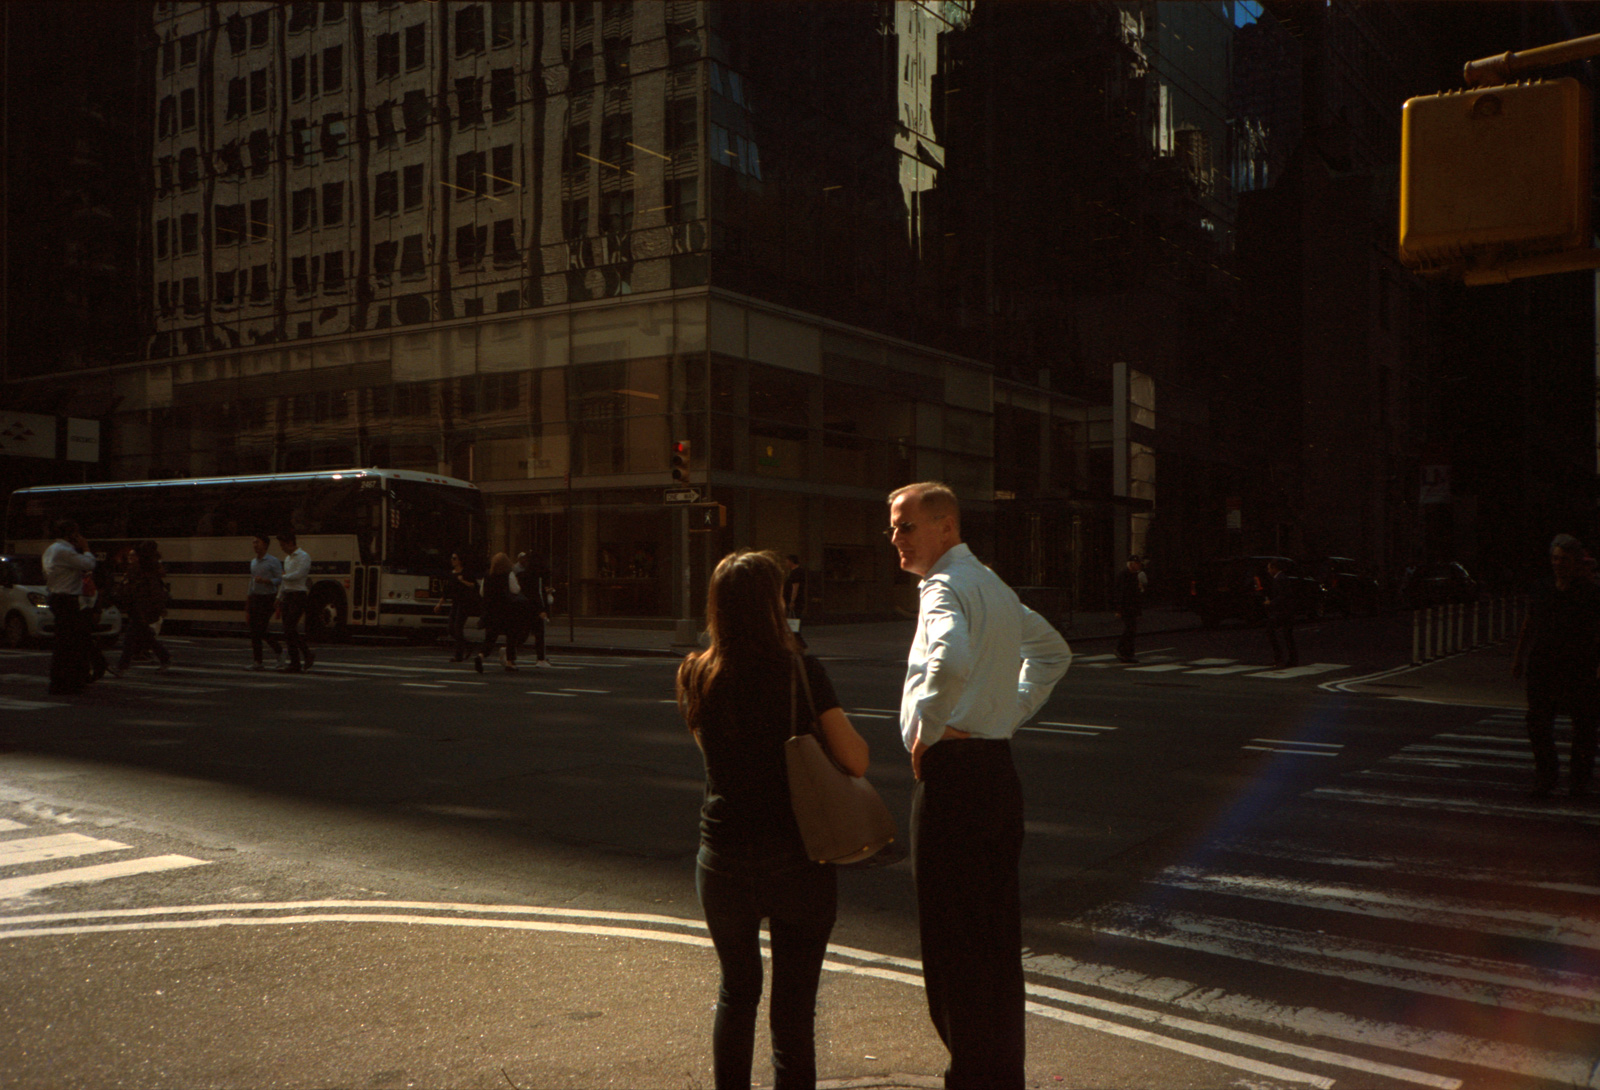 Discussions on Madison Avenue. Lonely New York Series By Ioannis Koussertari.